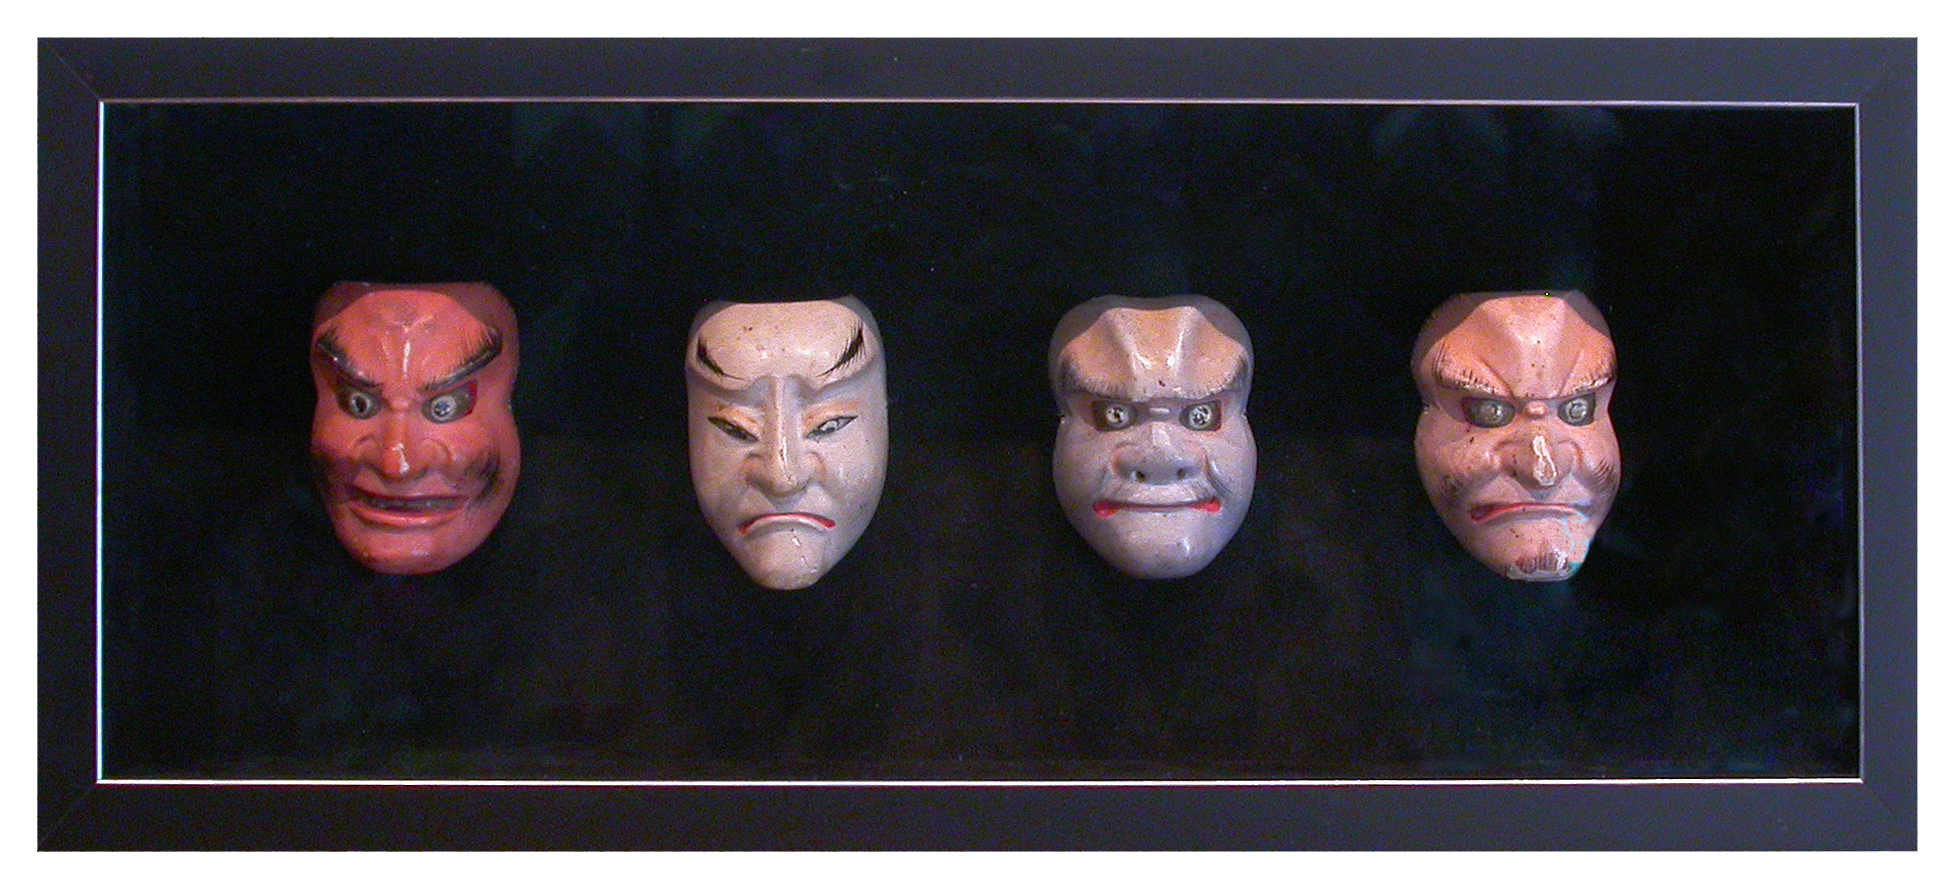 This collection of circa 1940's Japanese puppet heads seems to emerge from the darkness. The effect is created by the use of a black velvet lining within a black shadow box frame.